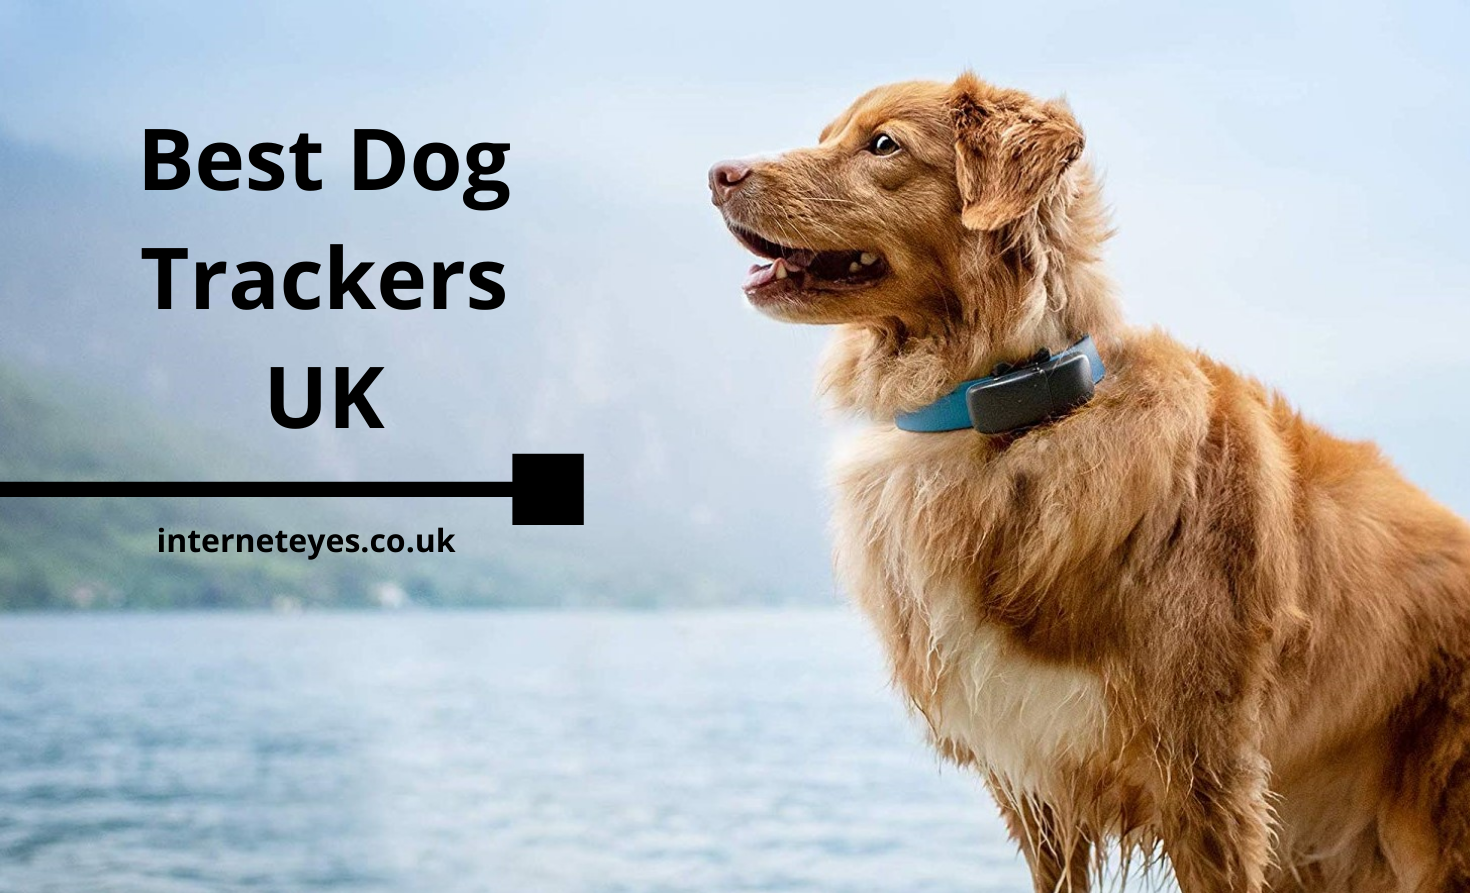 Dog Trackers UK